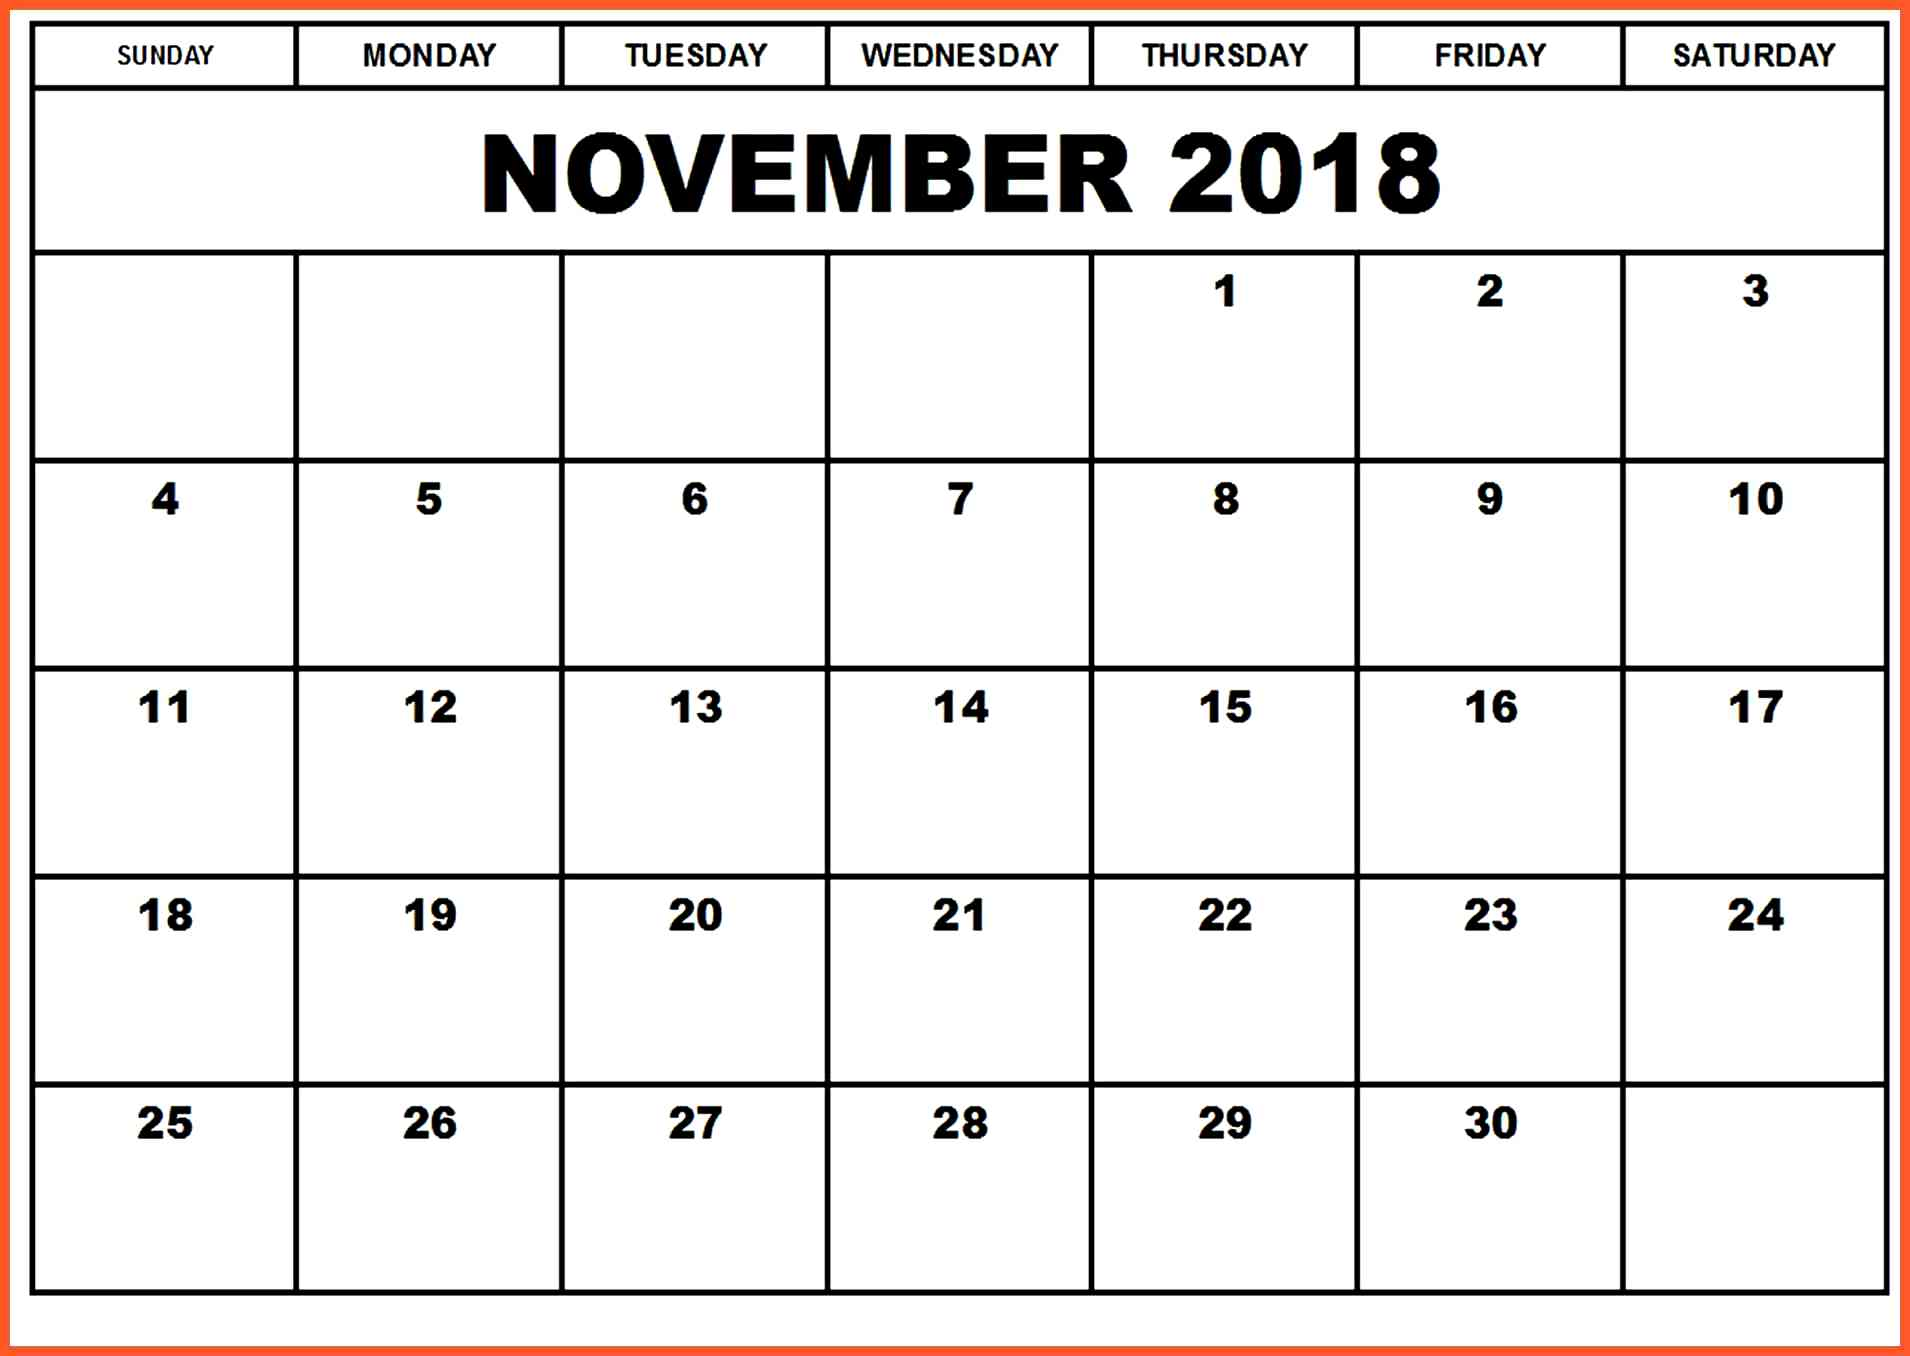 November 2018 Calendar Excel Worksheet